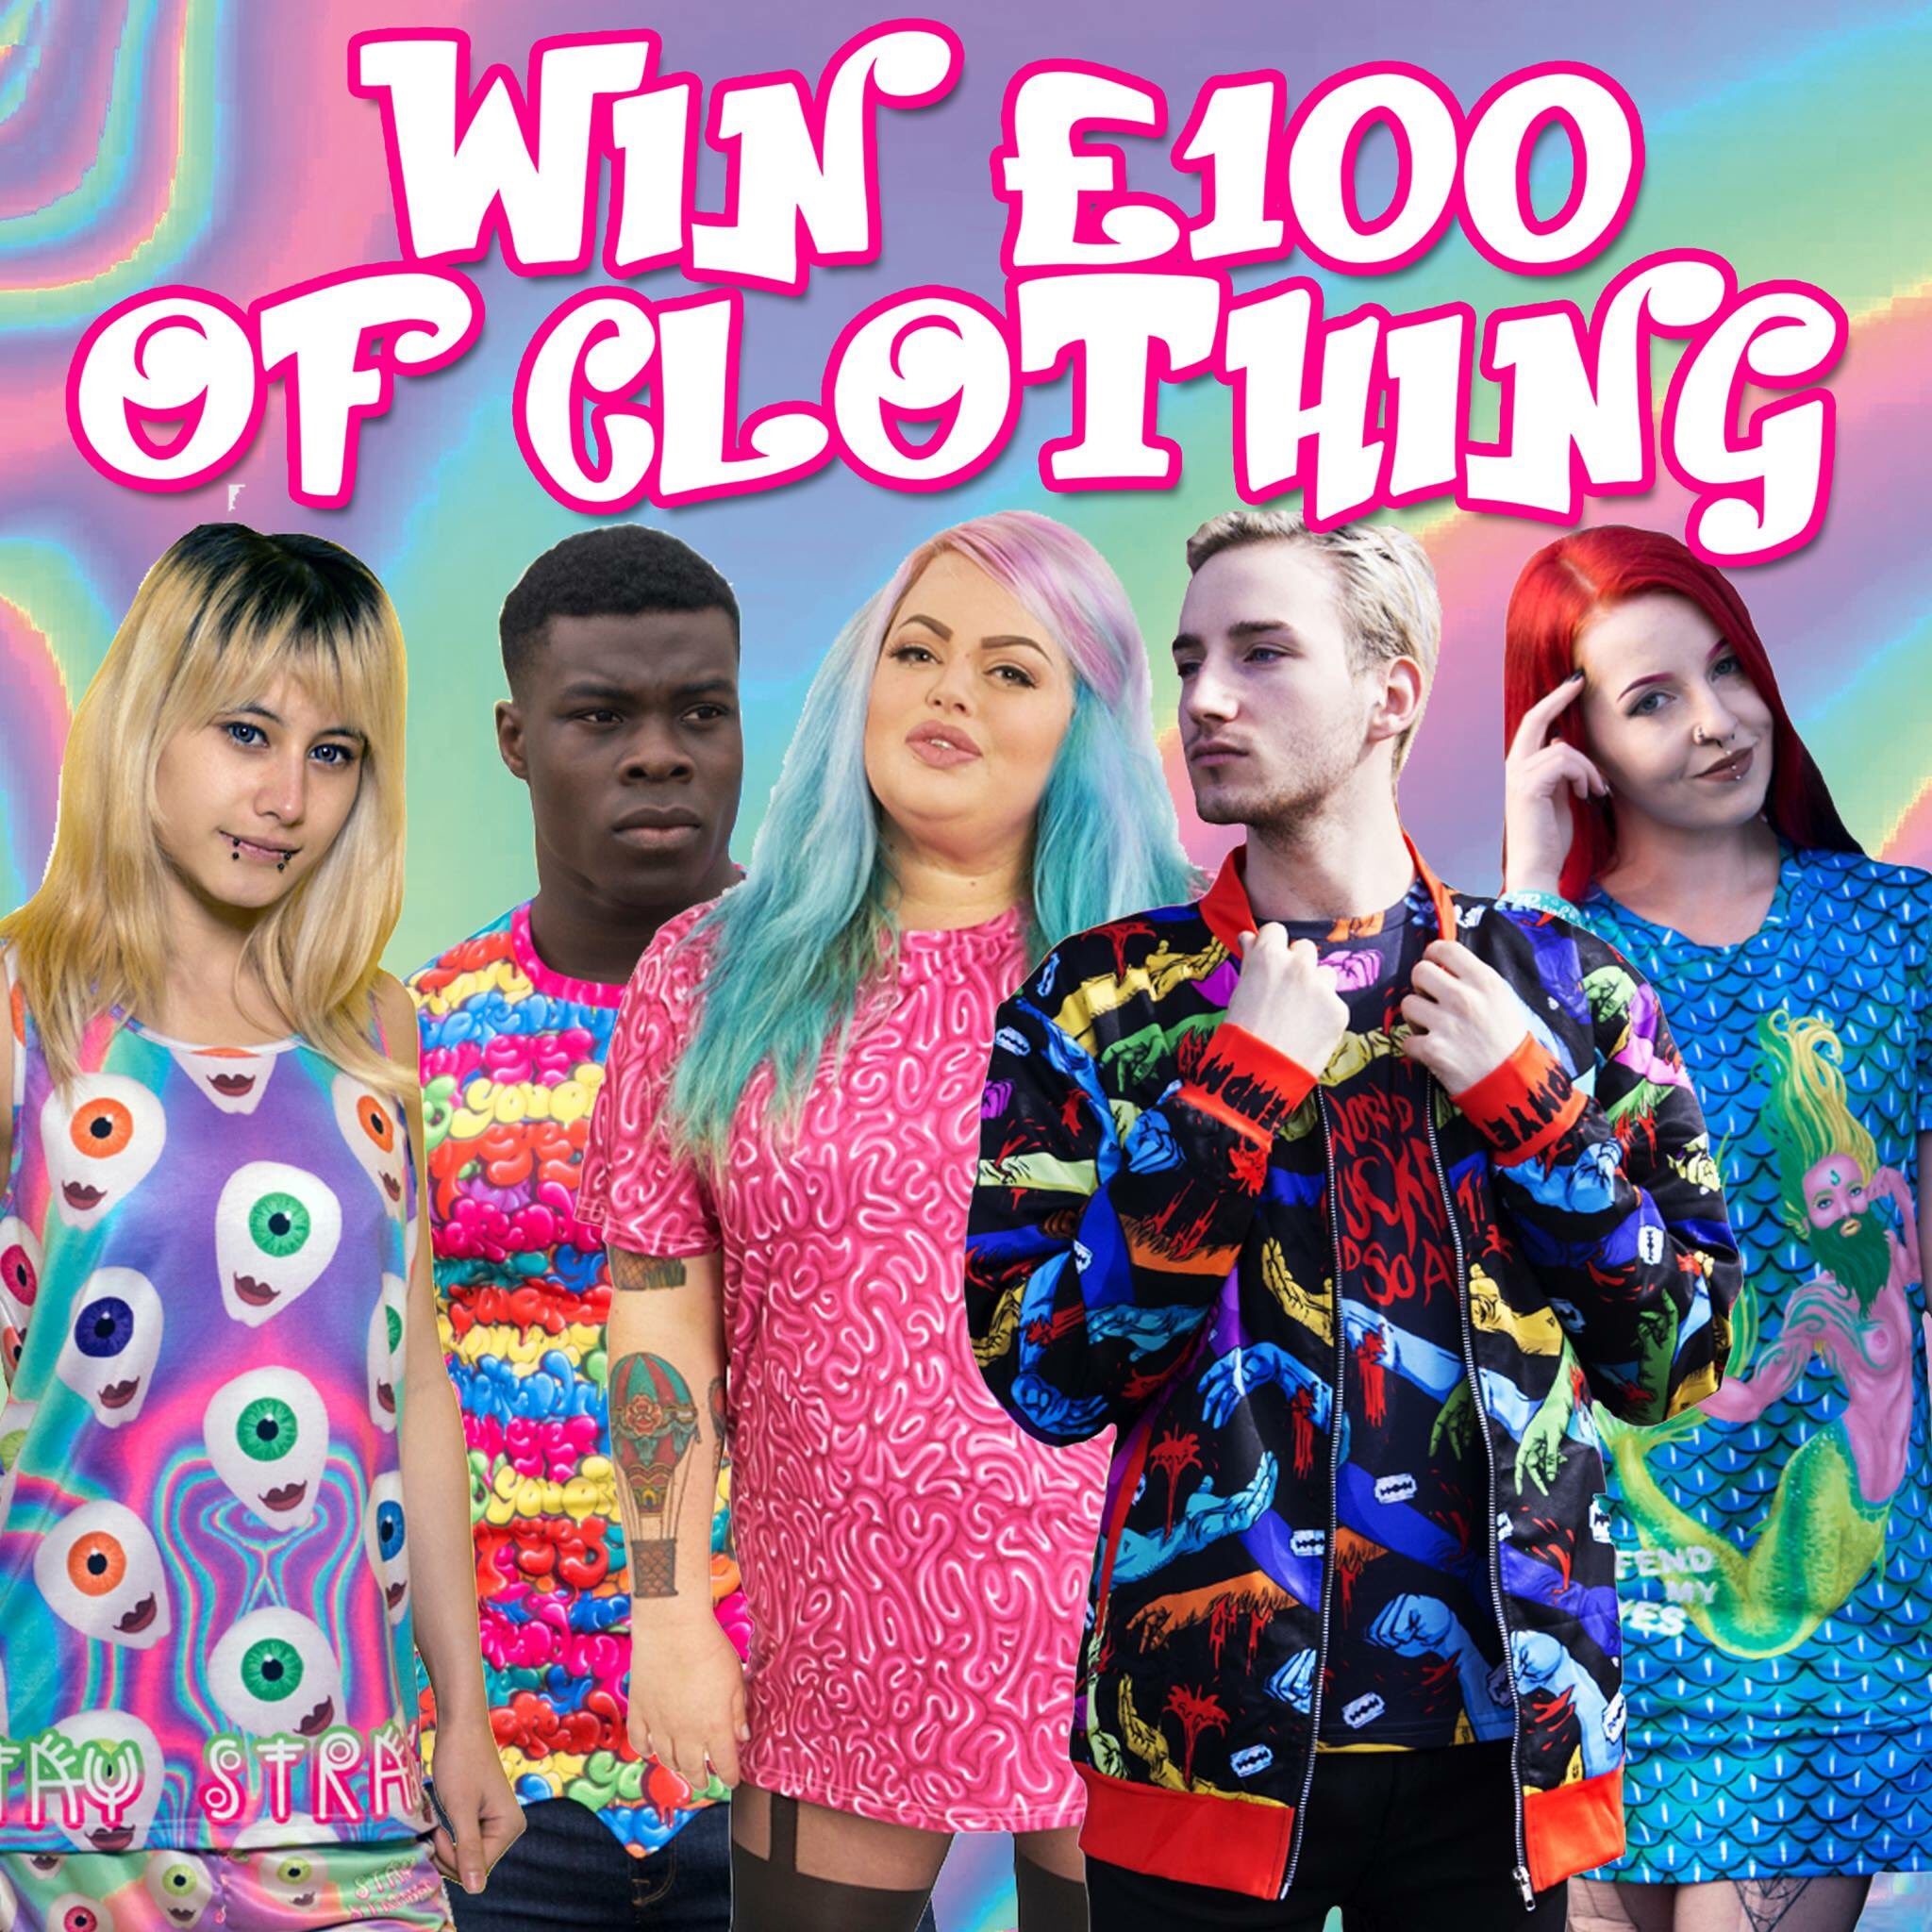 RT @OffendMyEyes: Who wants to win £100 worth of clothing for just £1?  Enter now! 🎁  ➡️ https://t.co/z7J048vCoZ ⬅️ https://t.co/6O9zWZy7zk